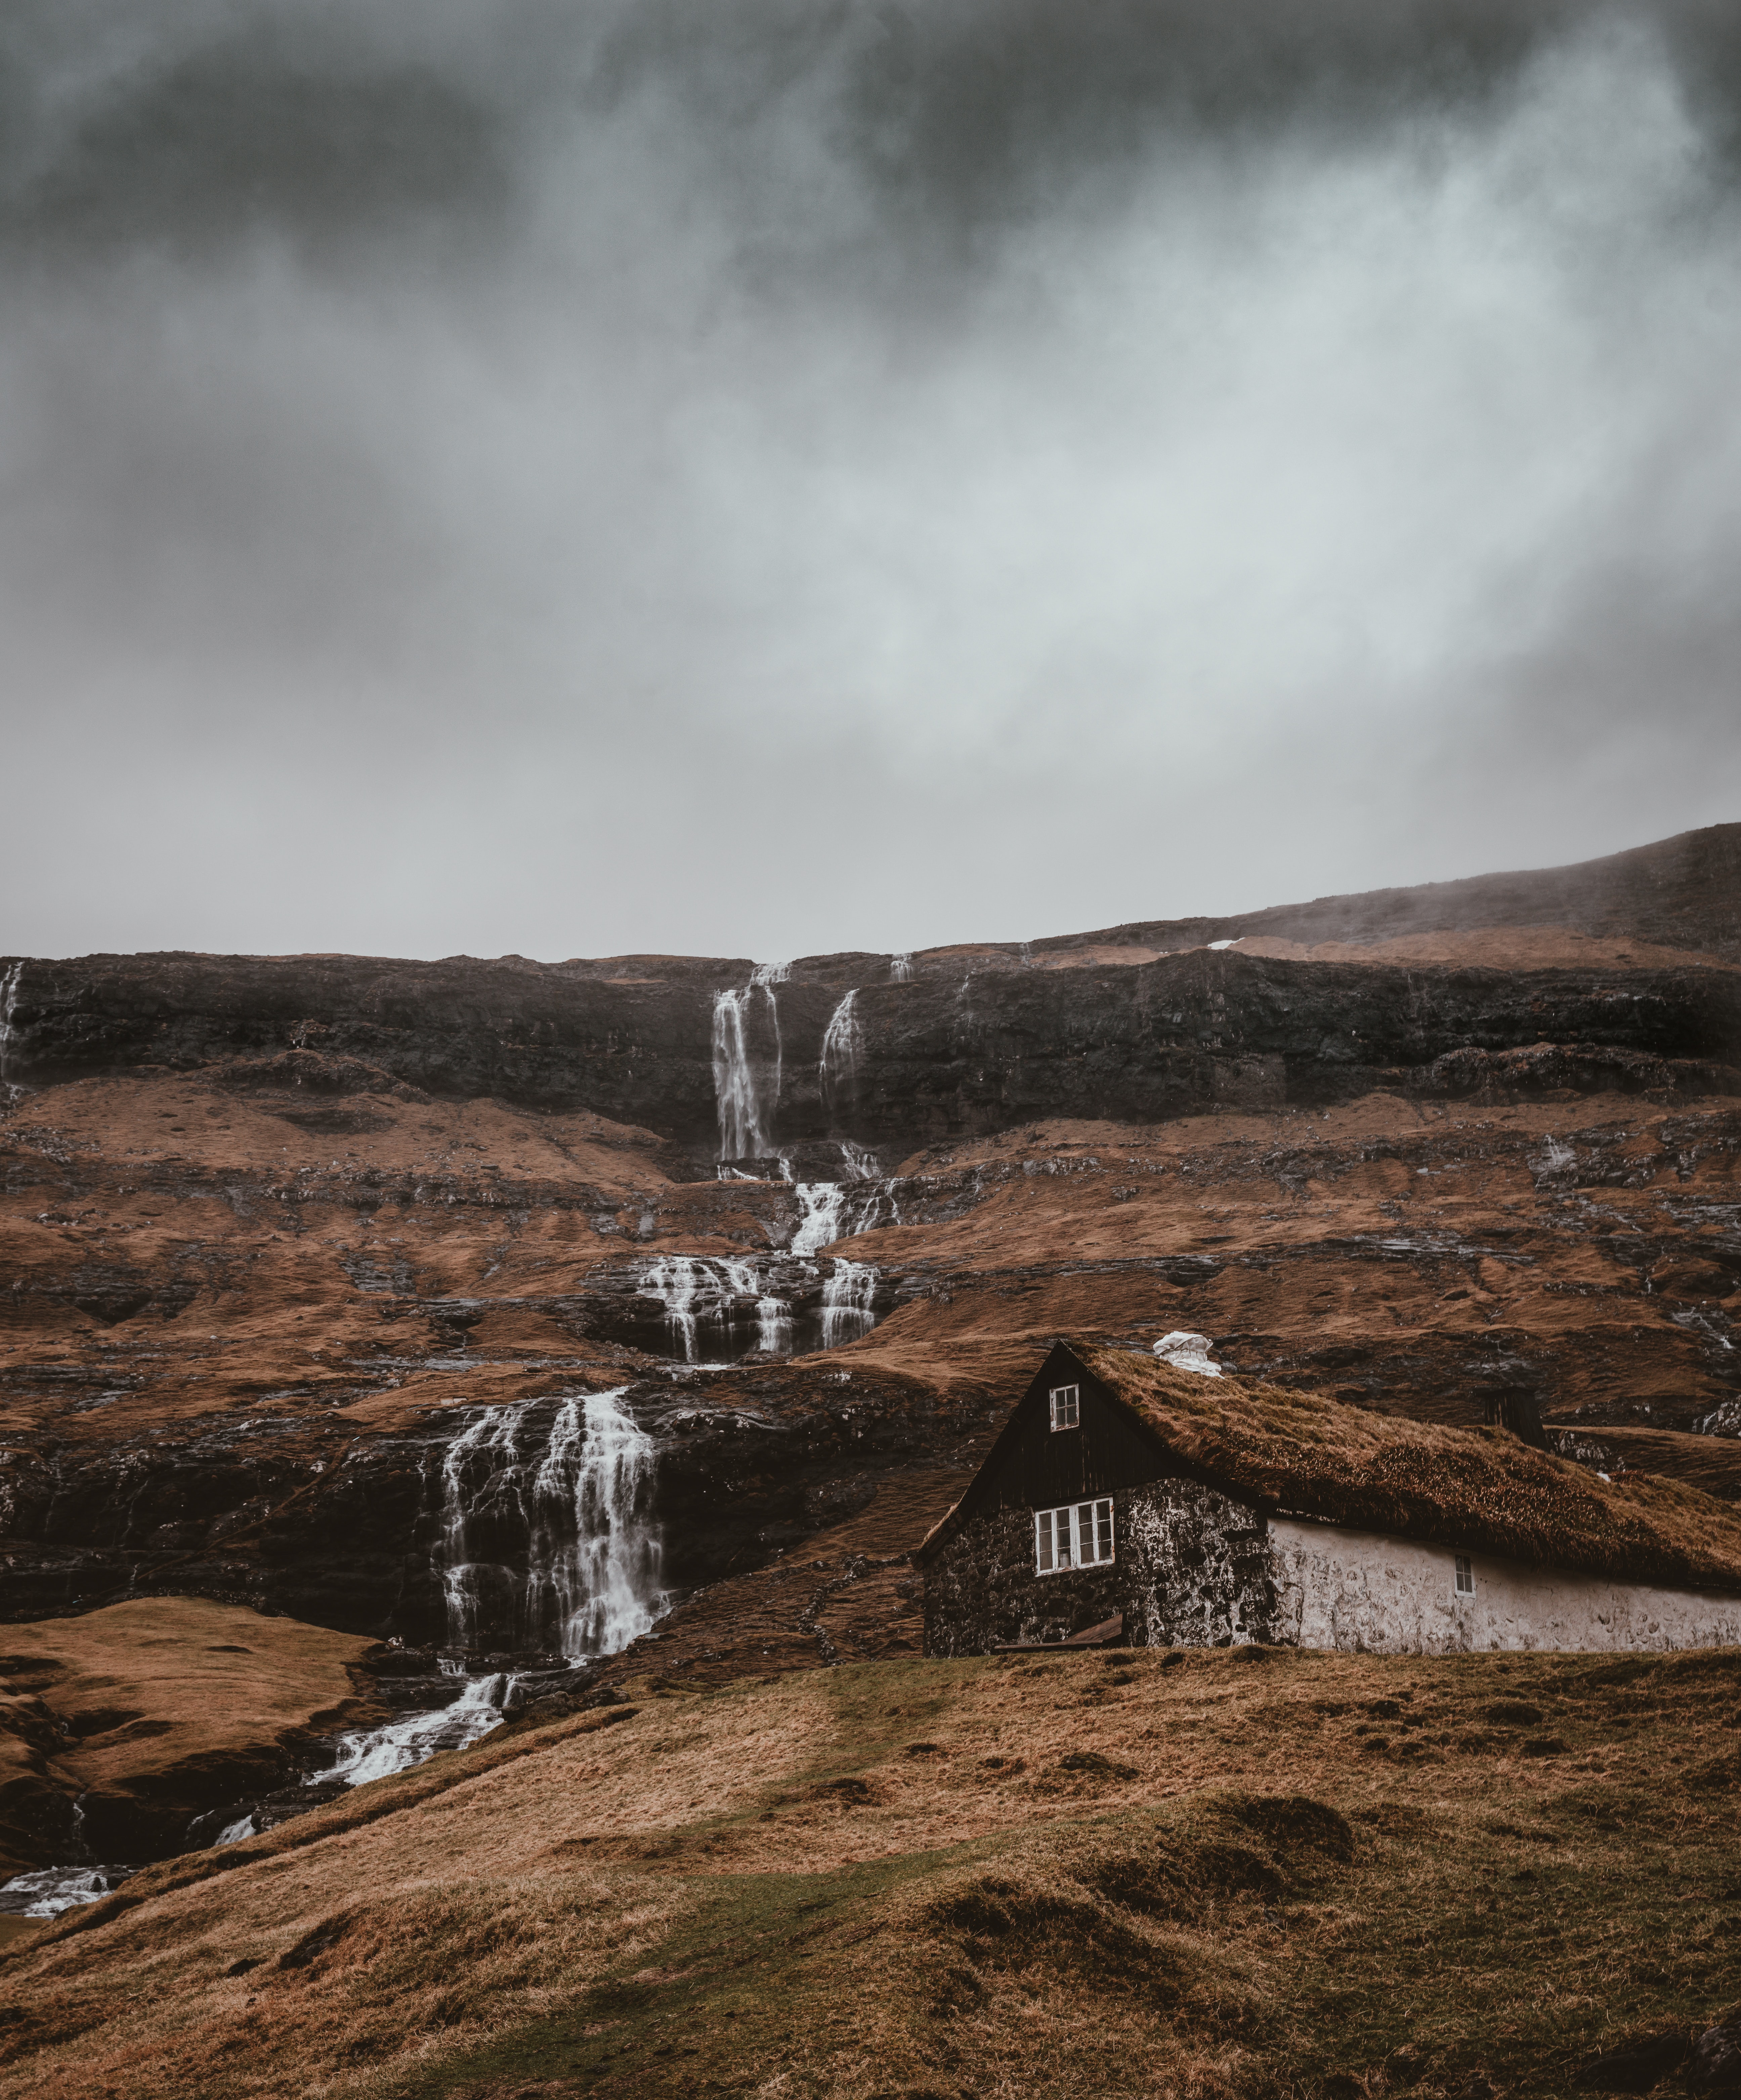 waterfalls near wooden house under gray skies